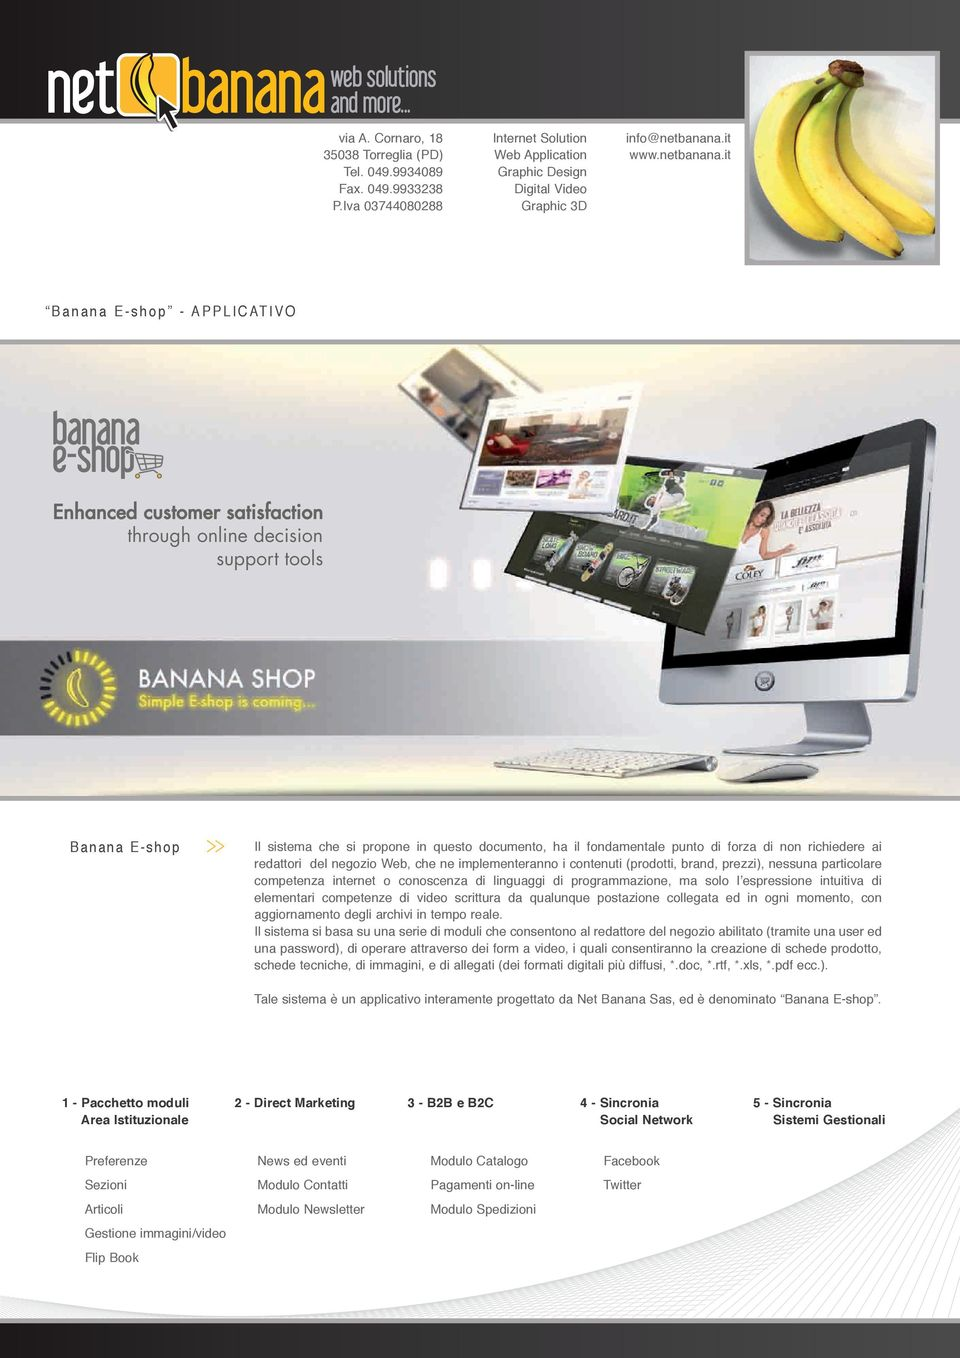 it Banana E-shop - APPLICATIVO Enhanced customer satisfaction through online decision support tools Banana E-shop >> Il sistema che si propone in questo documento, ha il fondamentale punto di forza